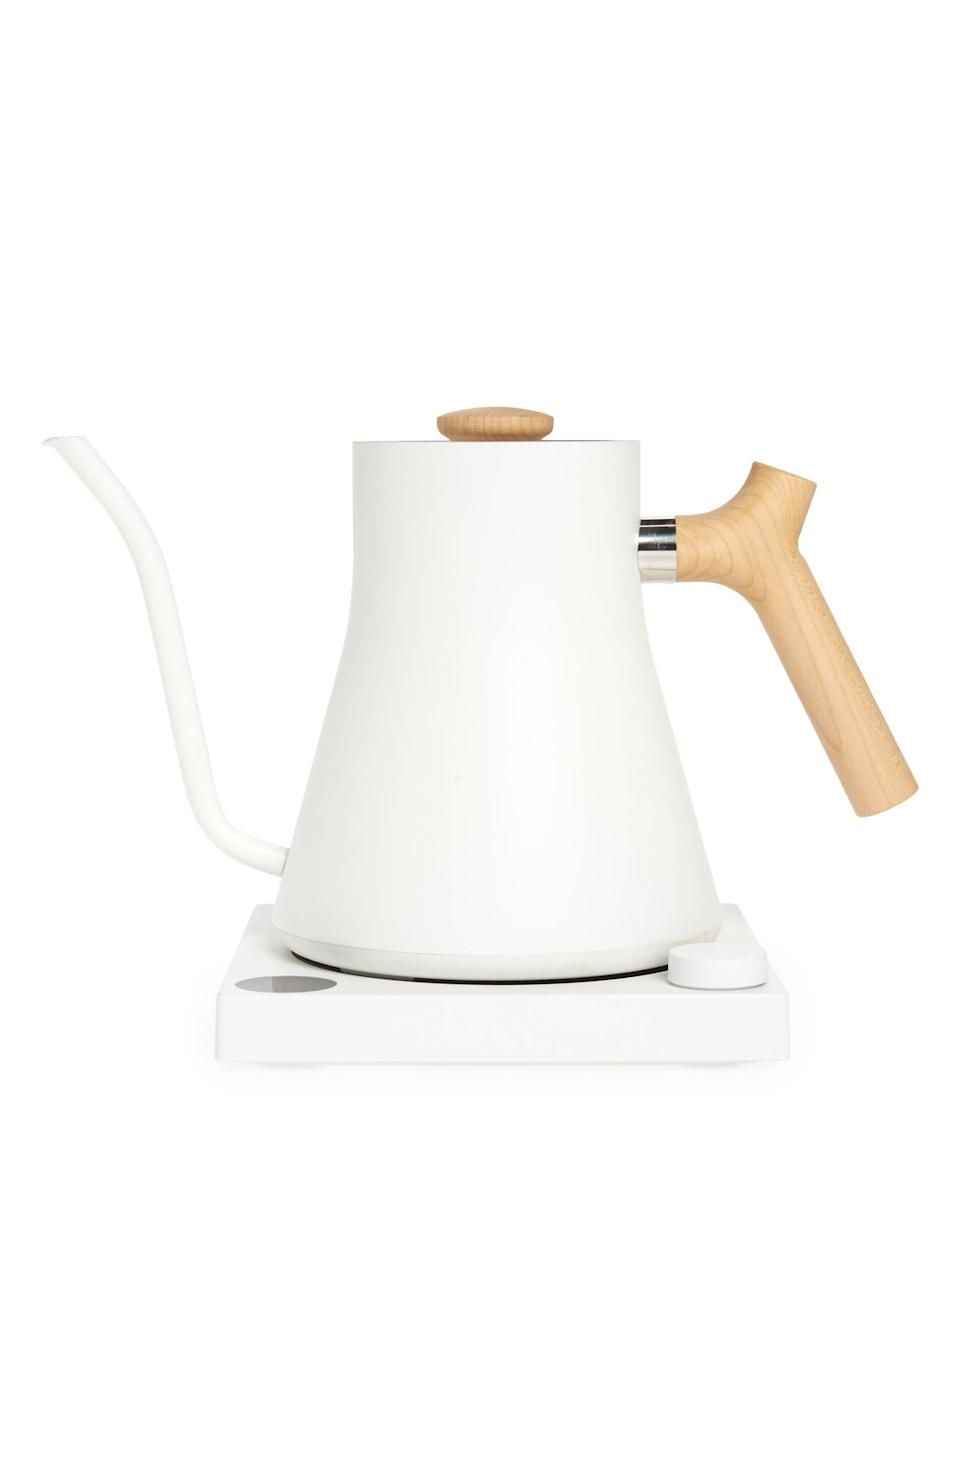 """<h2>Fellow Stagg EKG Kettle 29% Off </h2><br>""""As R29's resident tea fanatic, I take my hot water <em>very</em> seriously. I already own a retro-inspired Smeg kettle but I have my eyes on Fellow's EKG model to add to my appliance œuvre. Unlike most electric kettles, the Fellow model can be programmed to maintain a consistently drinkable warm temperature. (This is a big deal for me since I drink 8-10 cups a day.) Plus, it's insanely chic."""" <em>– Karina Hoshikawa, Beauty Market Editor</em><br><br><em>Shop <strong><a href=""""https://www.nordstrom.com/brands/fellow--19141"""" rel=""""nofollow noopener"""" target=""""_blank"""" data-ylk=""""slk:Fellow"""" class=""""link rapid-noclick-resp"""">Fellow</a></strong></em><br><br><strong>Fellow</strong> Stagg EKG Electric Kettle, $, available at <a href=""""https://go.skimresources.com/?id=30283X879131&url=https%3A%2F%2Fwww.nordstrom.com%2Fs%2Ffellow-stagg-ekg-electric-kettle%2F5887568"""" rel=""""nofollow noopener"""" target=""""_blank"""" data-ylk=""""slk:Nordstrom"""" class=""""link rapid-noclick-resp"""">Nordstrom</a>"""